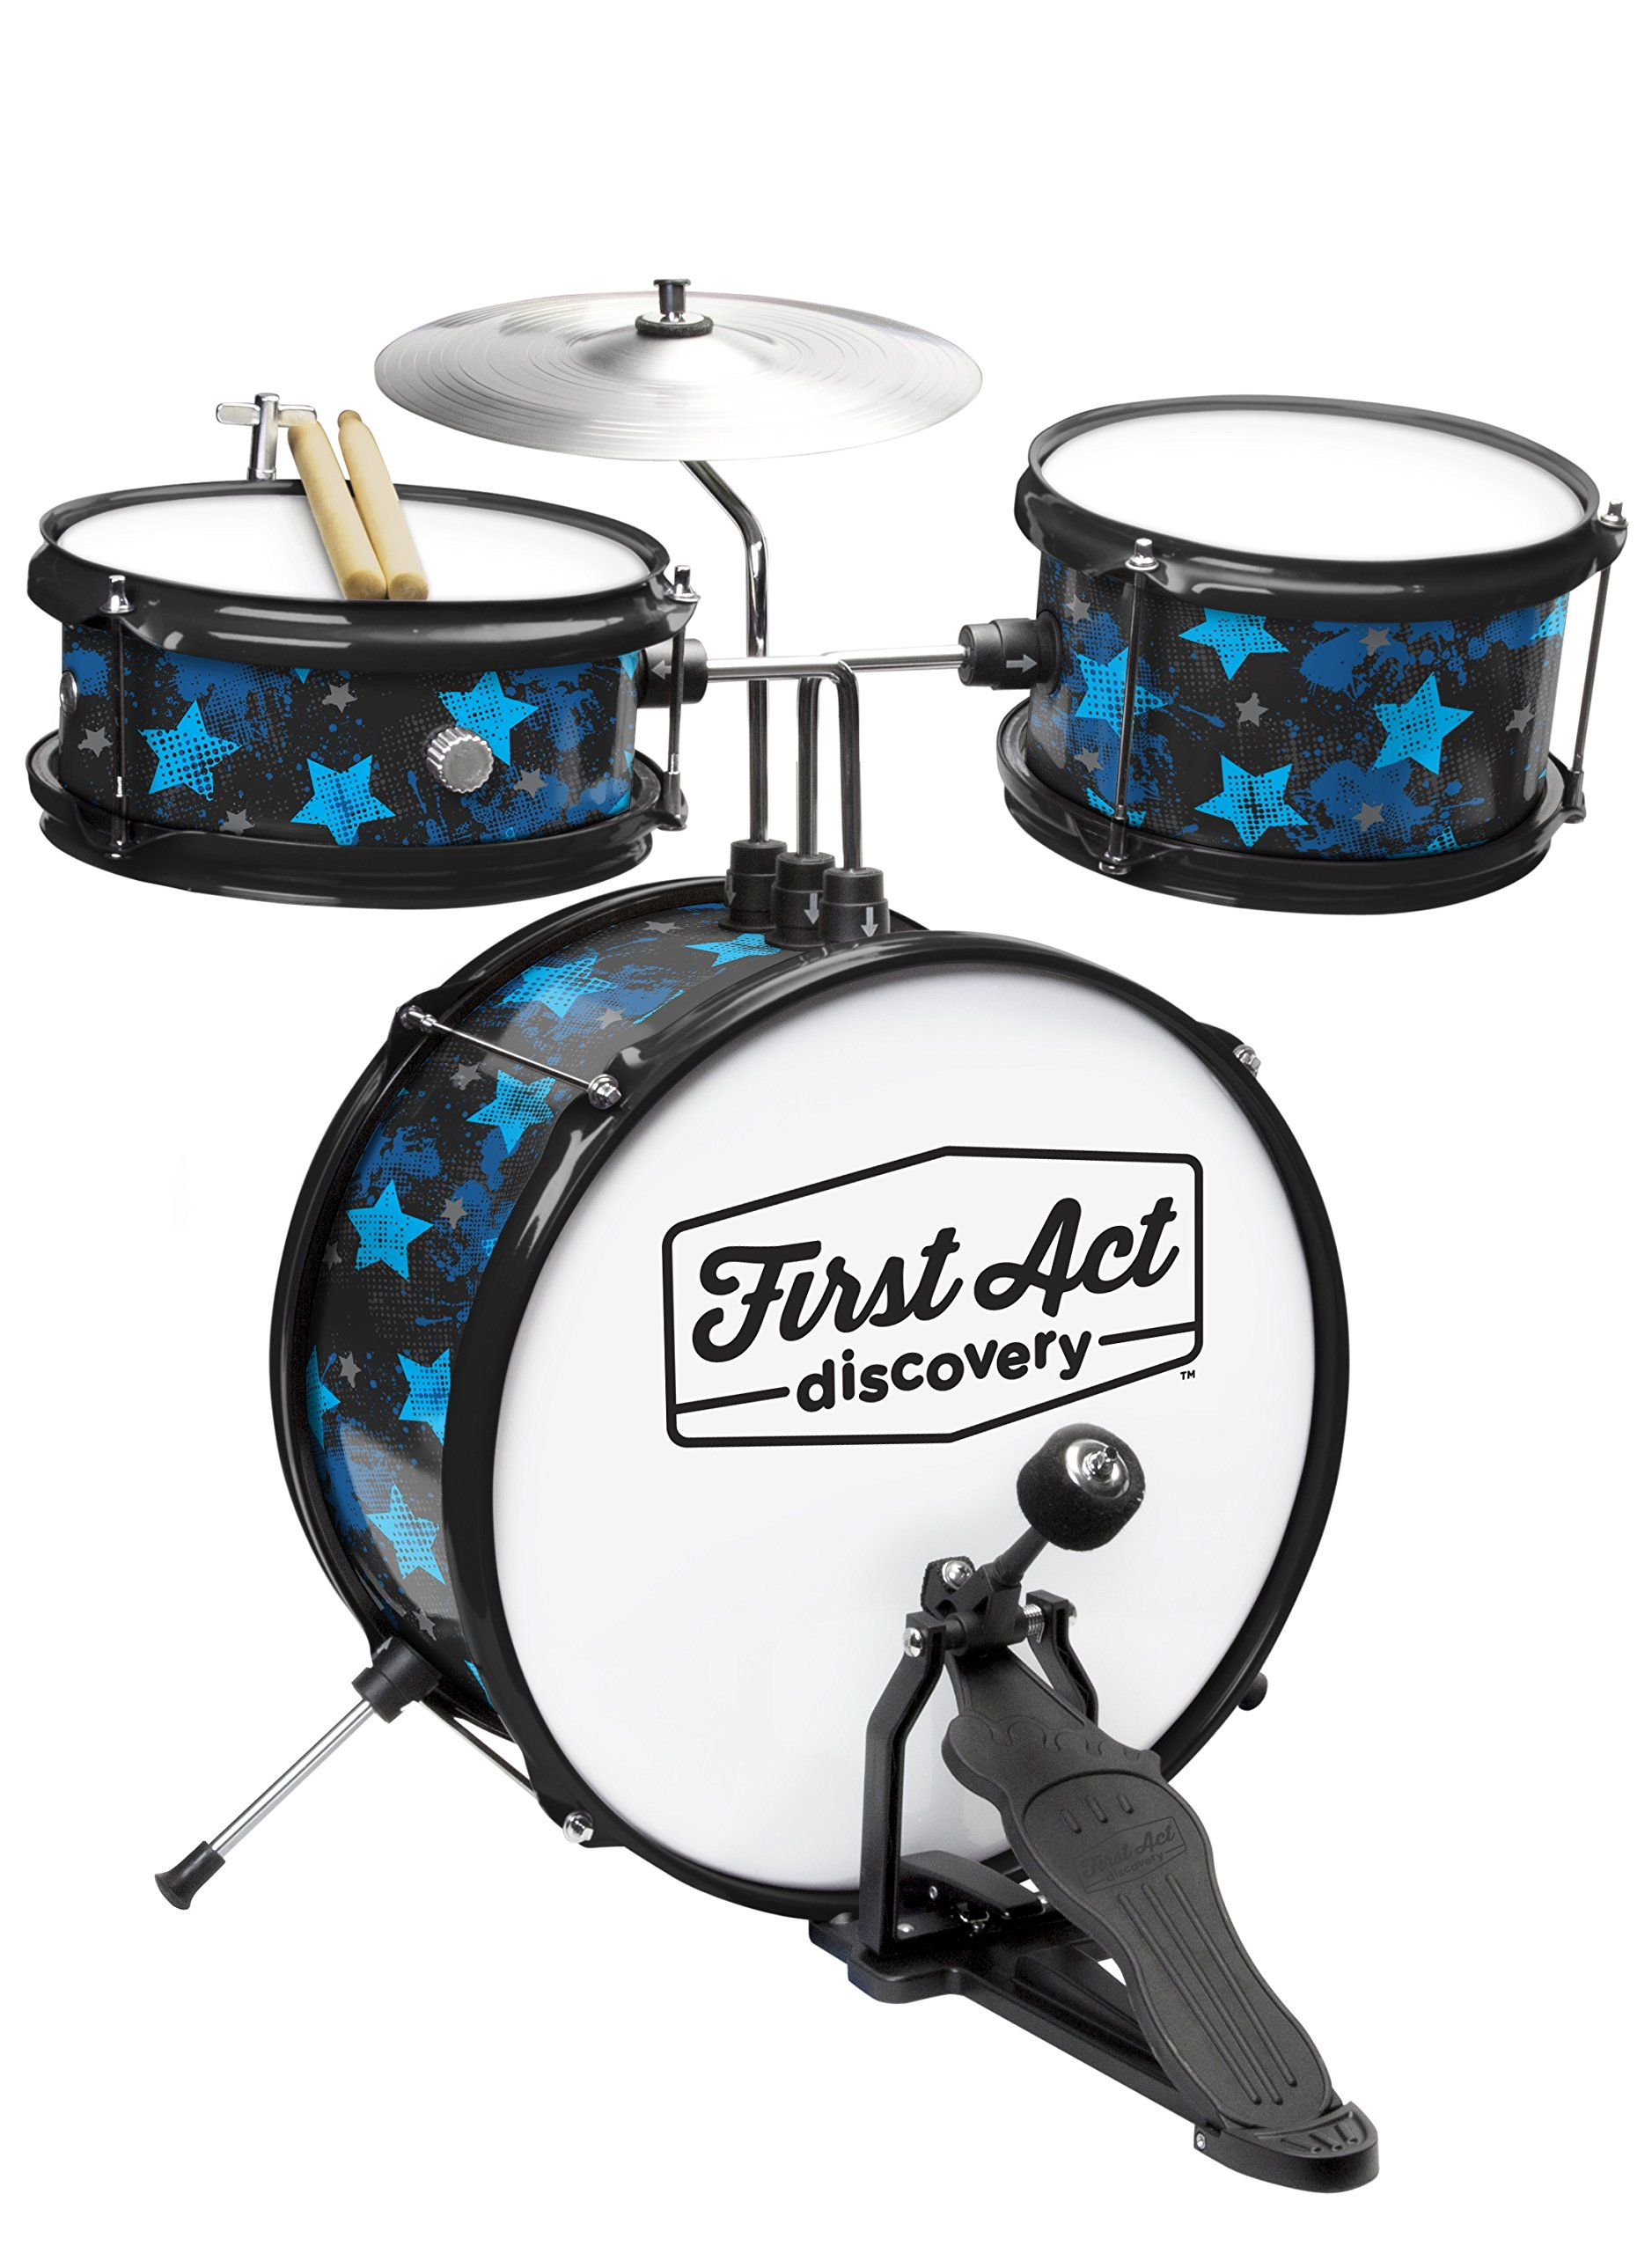 First Act Discovery Rock Stars Drum Set by First Act Discovery